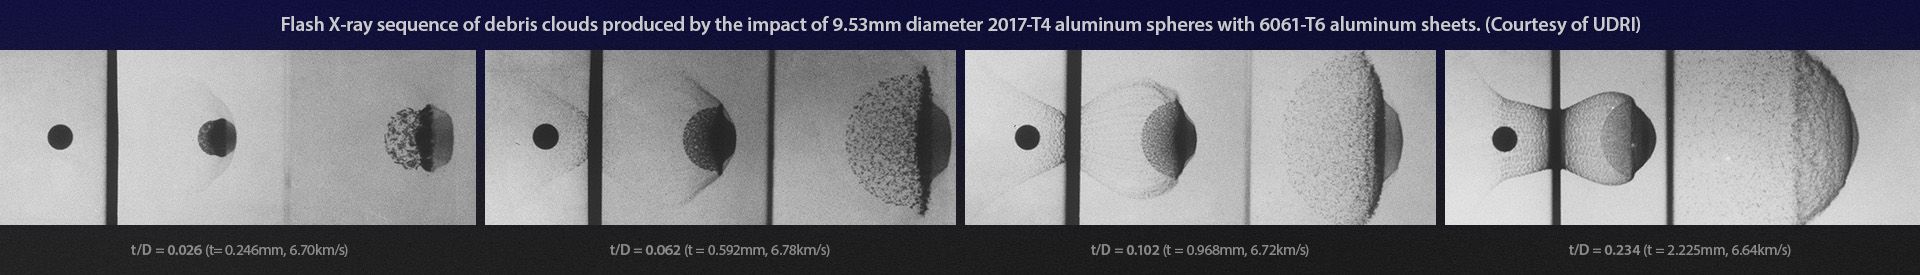 Flash X-ray sequence of debris clouds produced by the impact of 9.53mm diameter 2017-T4 aluminum spheres with 6061-T6 aluminum sheets. (Courtesy of UDRI)